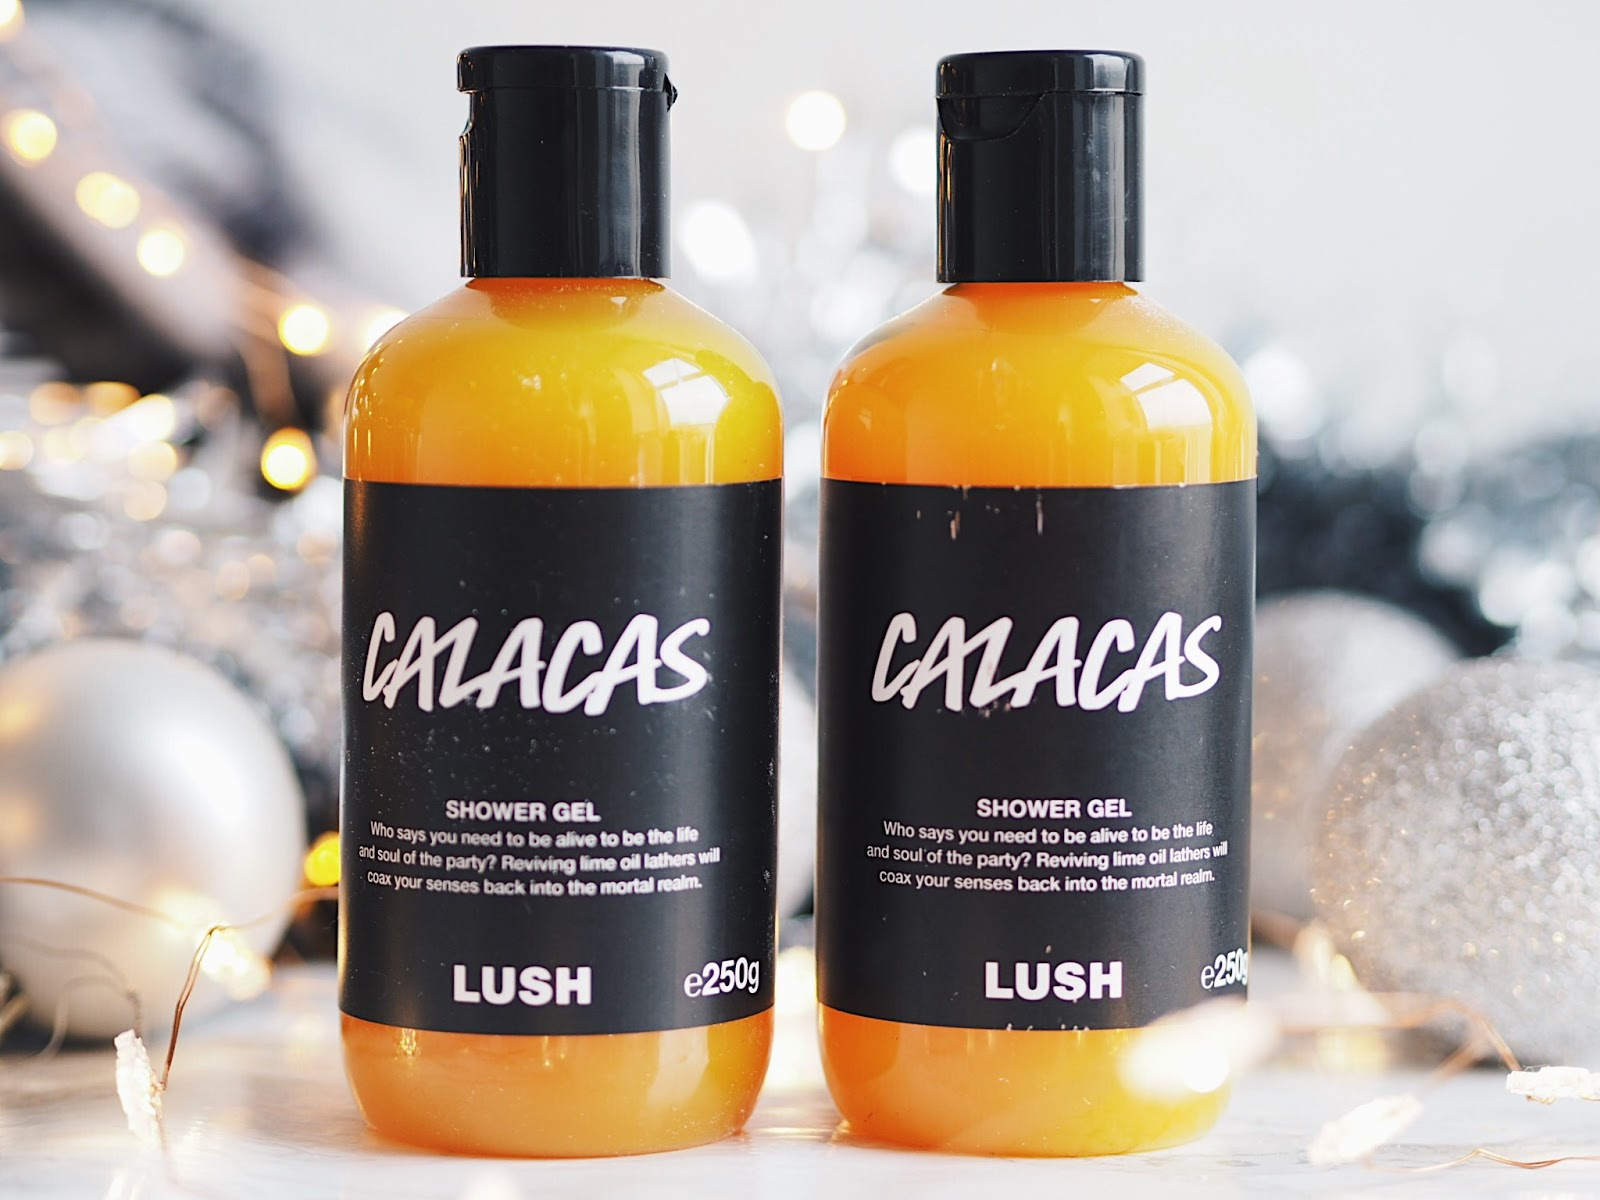 lush christmas 2017 calacas shower gel